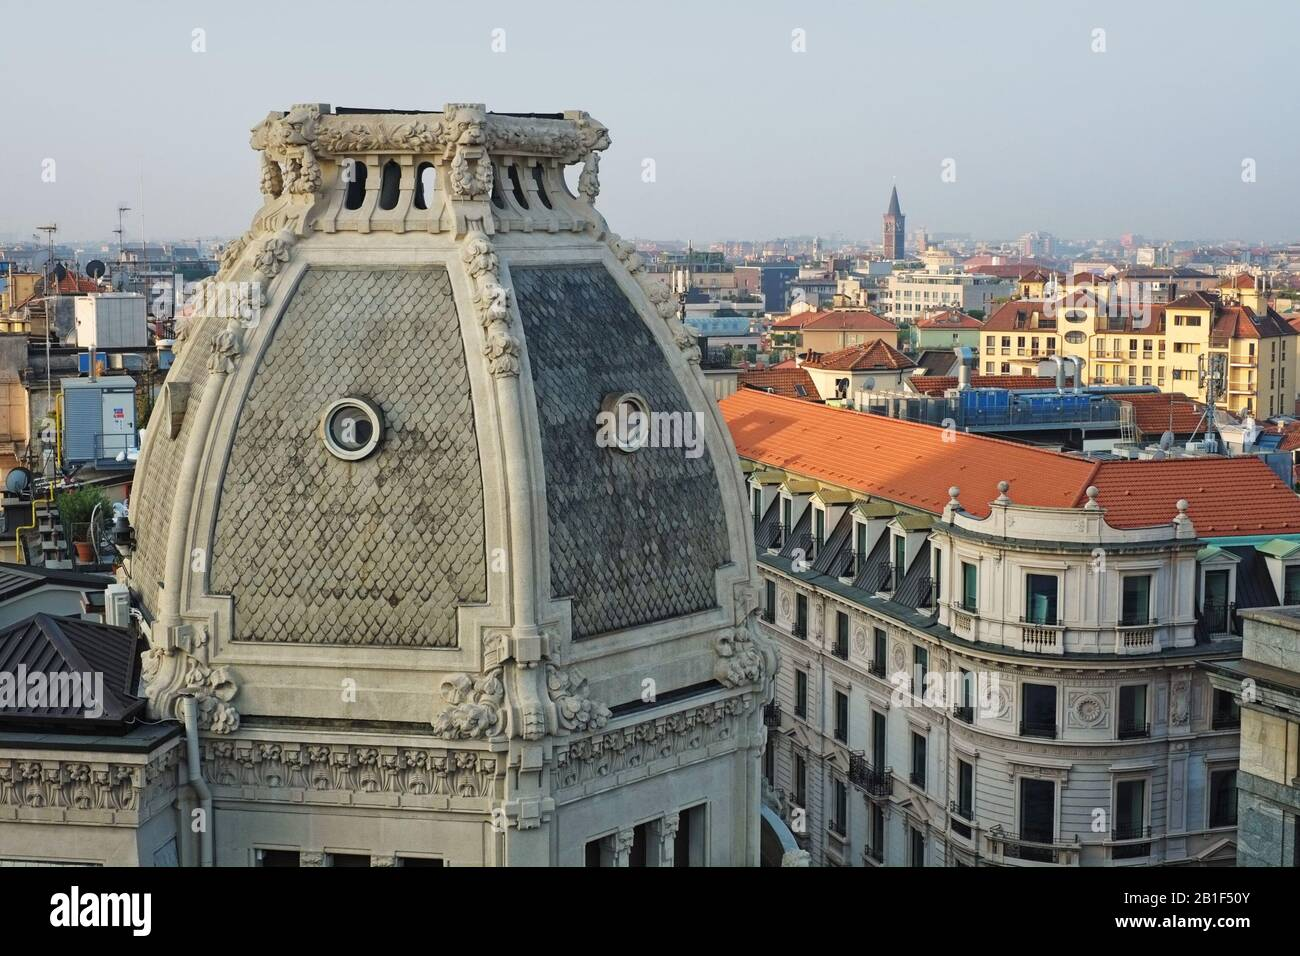 A close view of the balustrade topped roof dome of Palazzo Meroni - lions and floral garlands, oculi windows and the city of Milan in the background Stock Photo